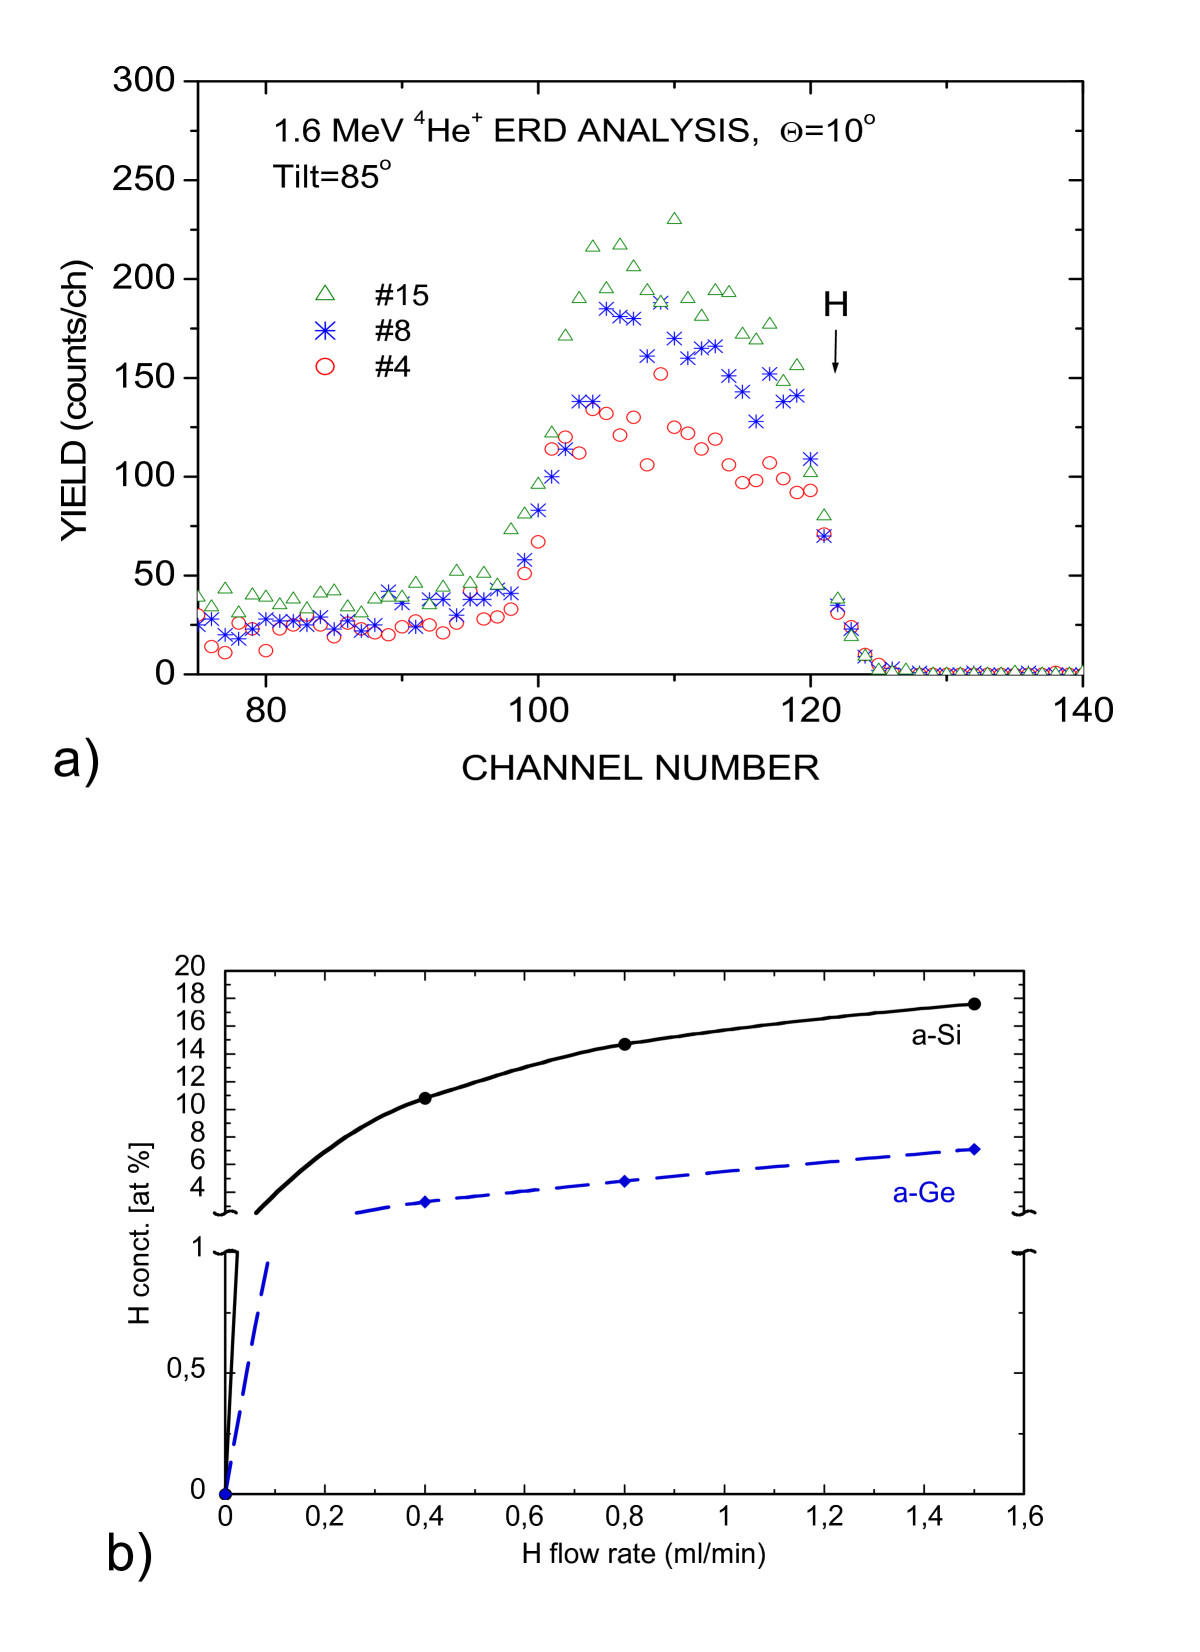 http://static-content.springer.com/image/art%3A10.1186%2F1556-276X-6-189/MediaObjects/11671_2010_Article_115_Fig2_HTML.jpg